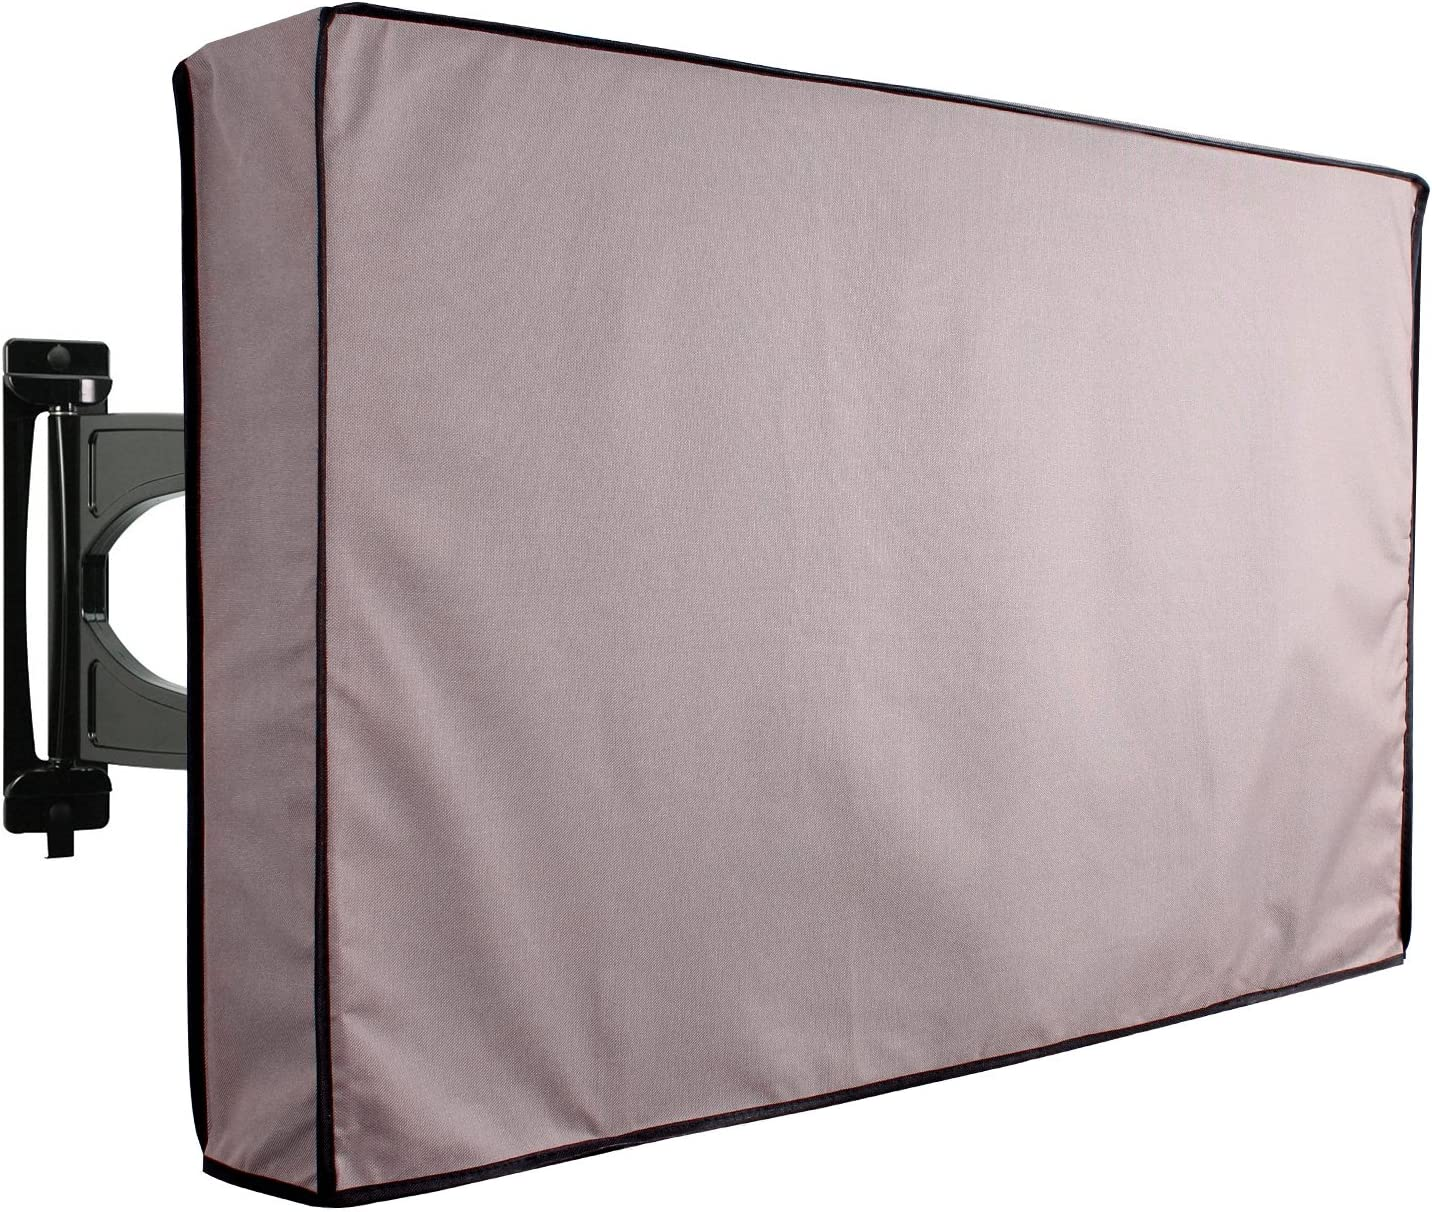 KHOMO GEAR Outdoor TV Cover Fits Most Mounts /& Brackets Universal Weatherproof Protector for 50-52 Inch TV Titan Series